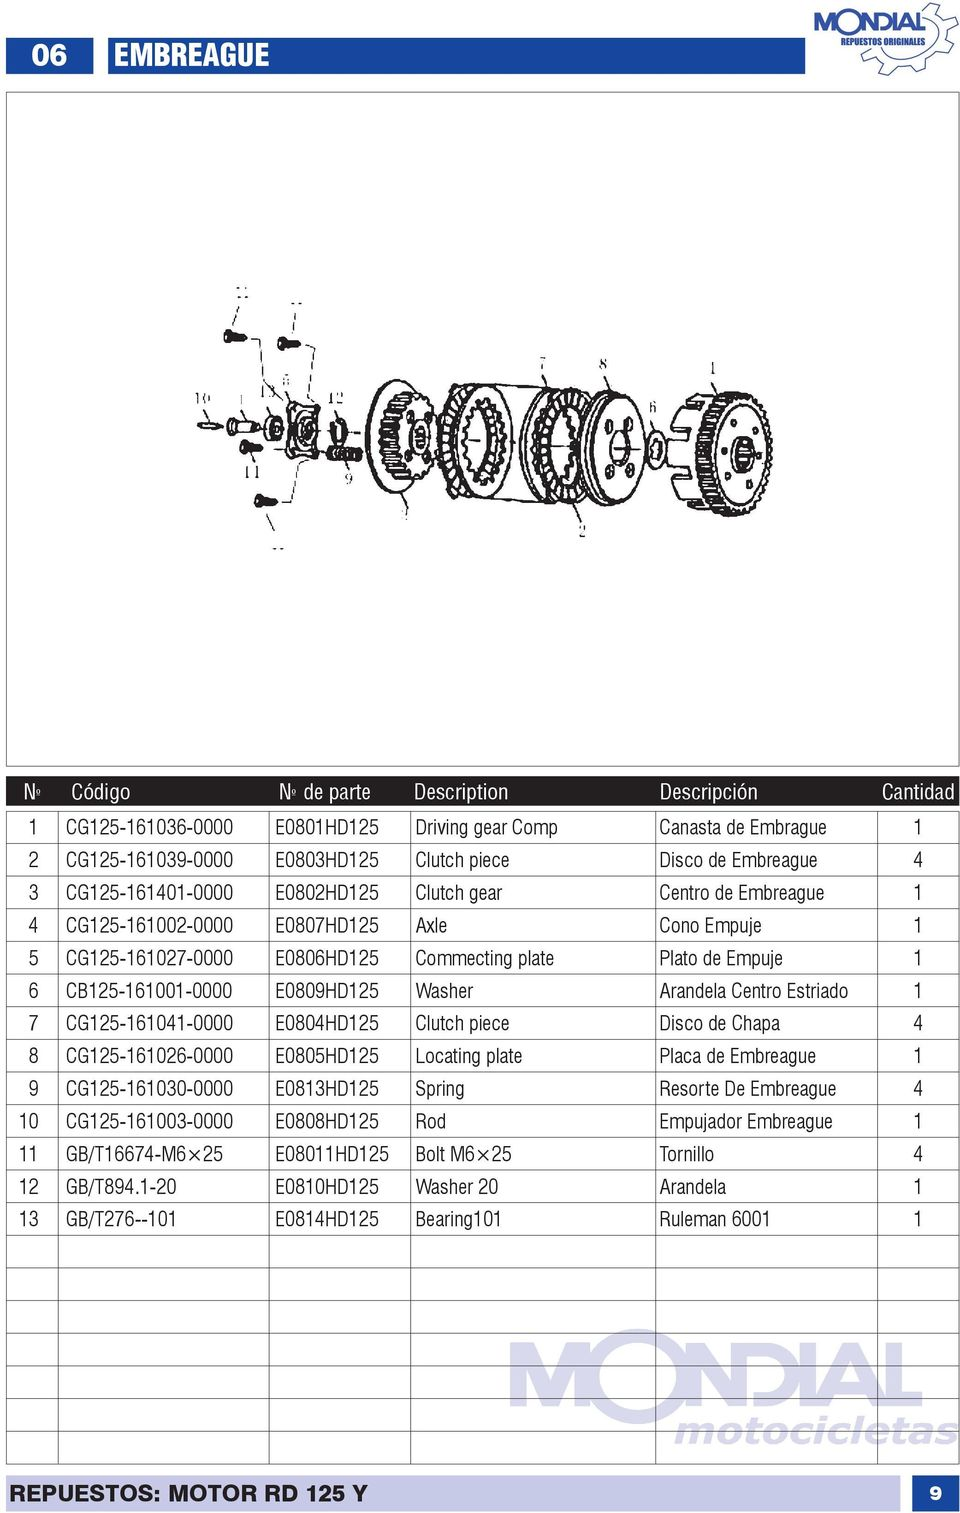 CG125-161041-0000 E0804HD125 Clutch piece disco de Chapa 4 8 CG125-161026-0000 E0805HD125 Locating plate placa de Embreague 1 9 CG125-161030-0000 E0813HD125 Spring resorte De Embreague 4 10